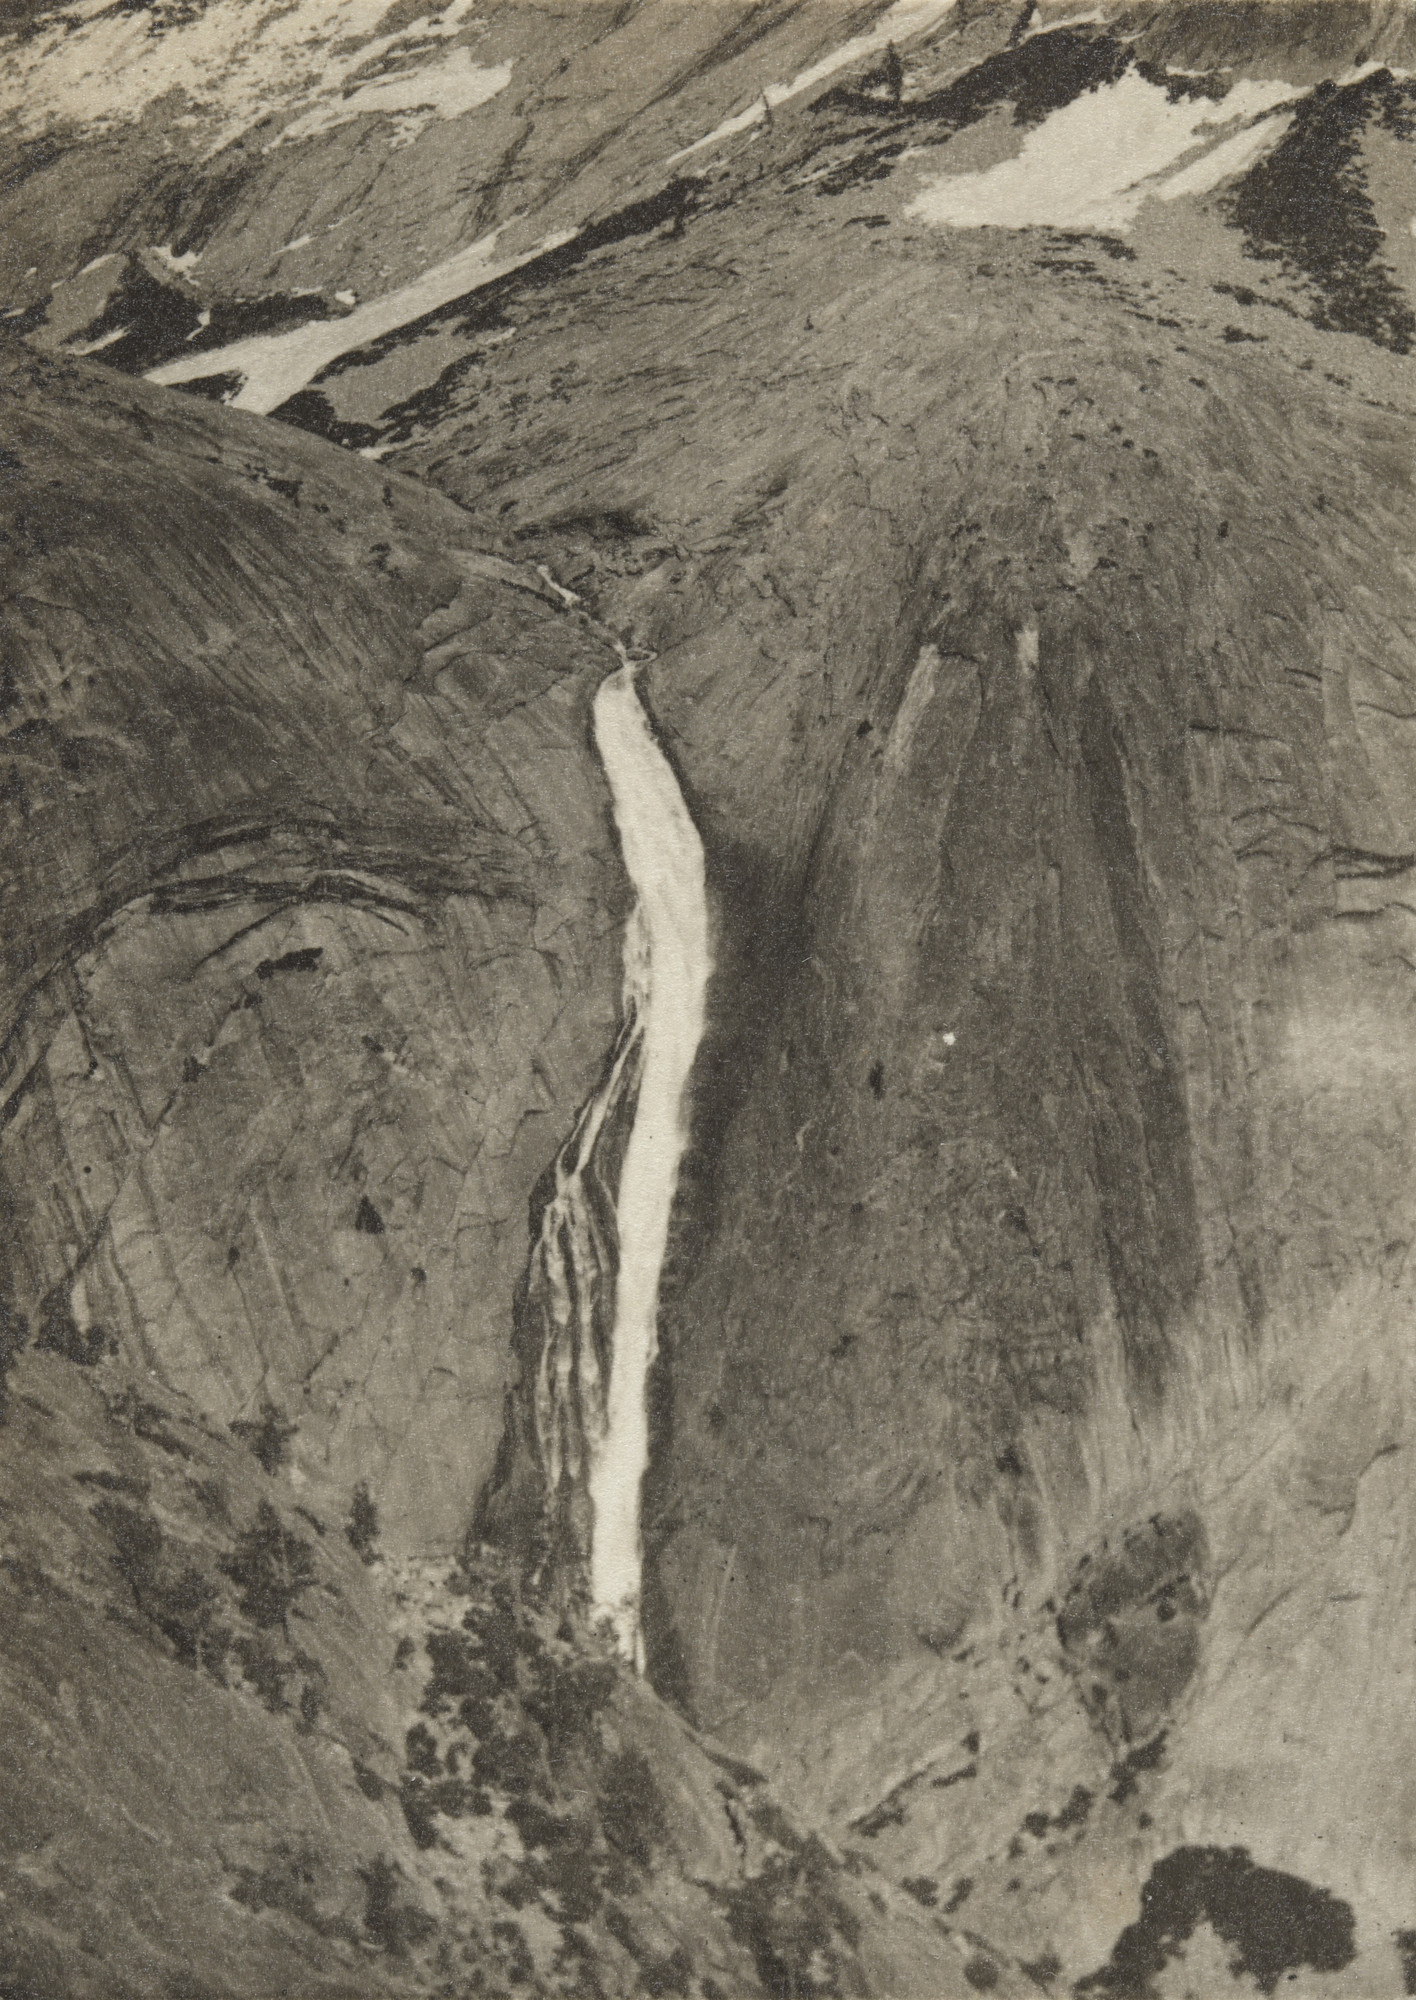 Ansel Adams. Fall in Upper Tenaya Canyon, Yosemite National Park, California. c. 1920